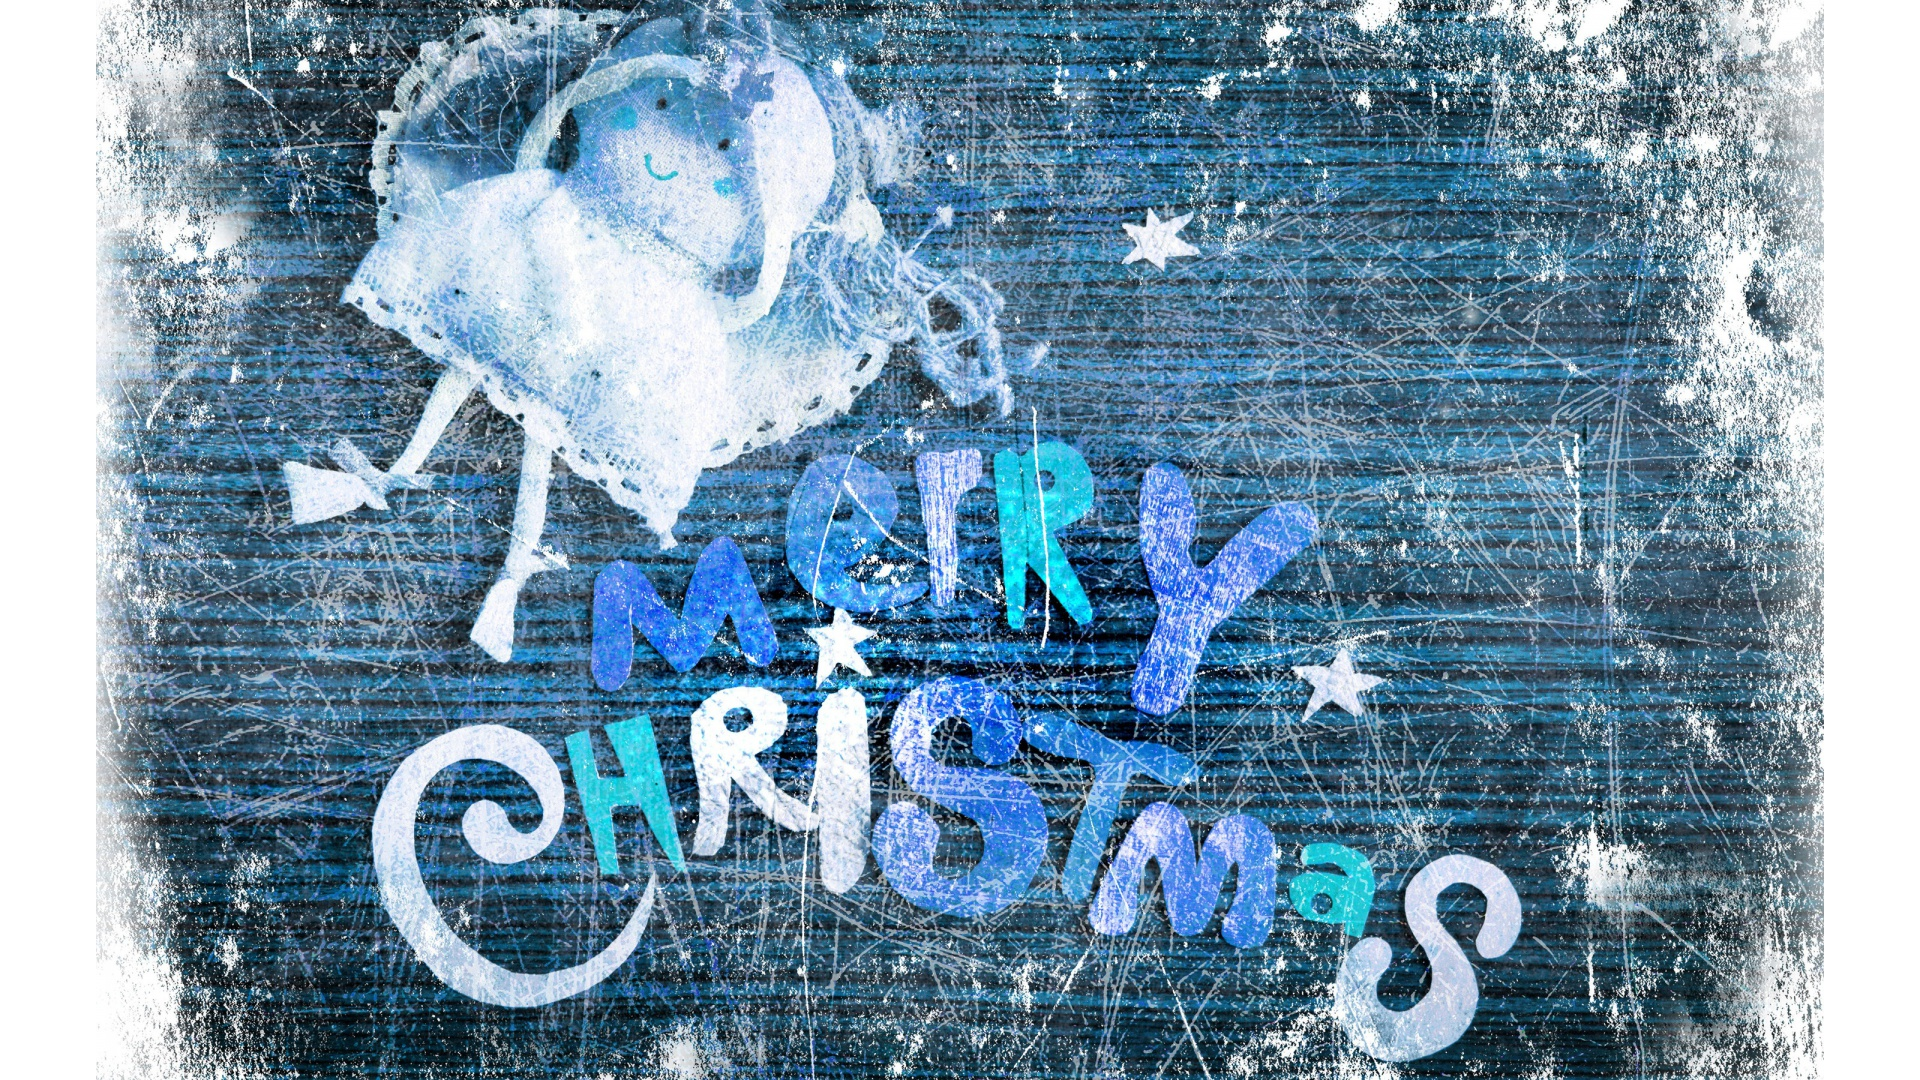 2014 Christmas Cards Wallpaper High Definition High Quality Widescreen